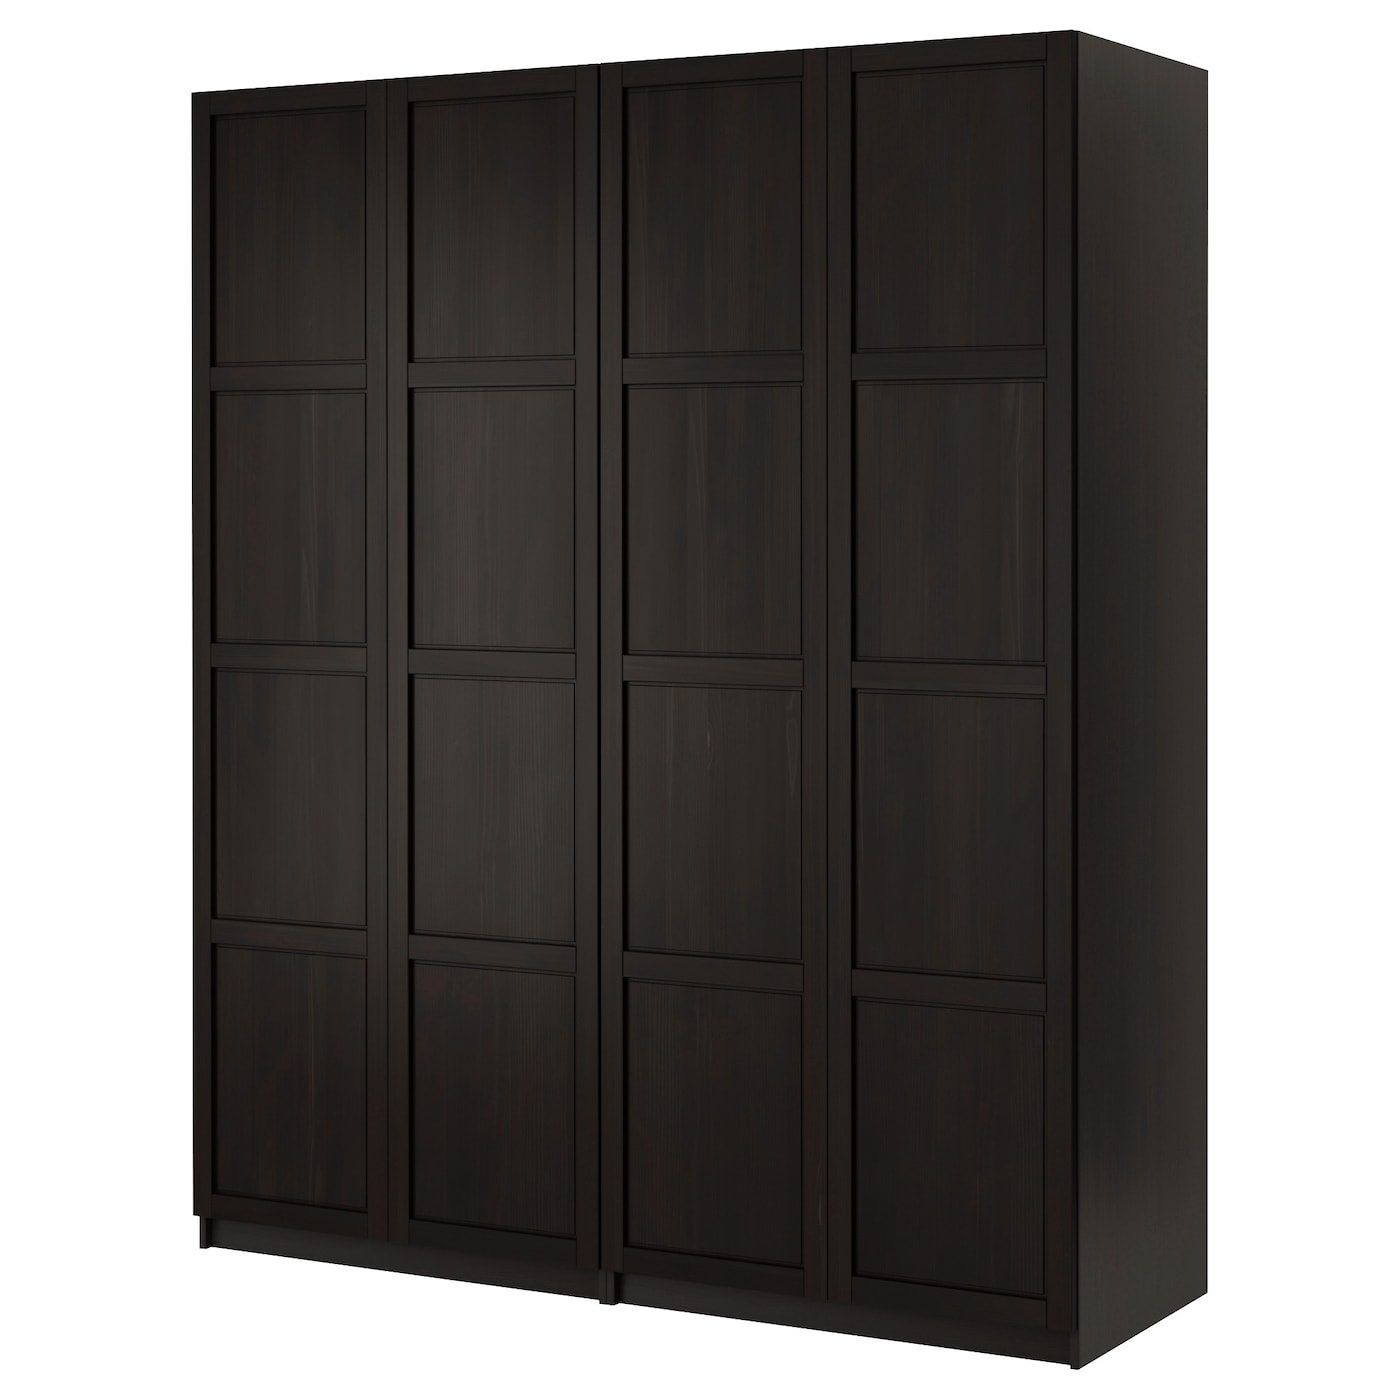 pax armoire penderie brun noir hemnes brun noir 200x60x236 cm ikea. Black Bedroom Furniture Sets. Home Design Ideas